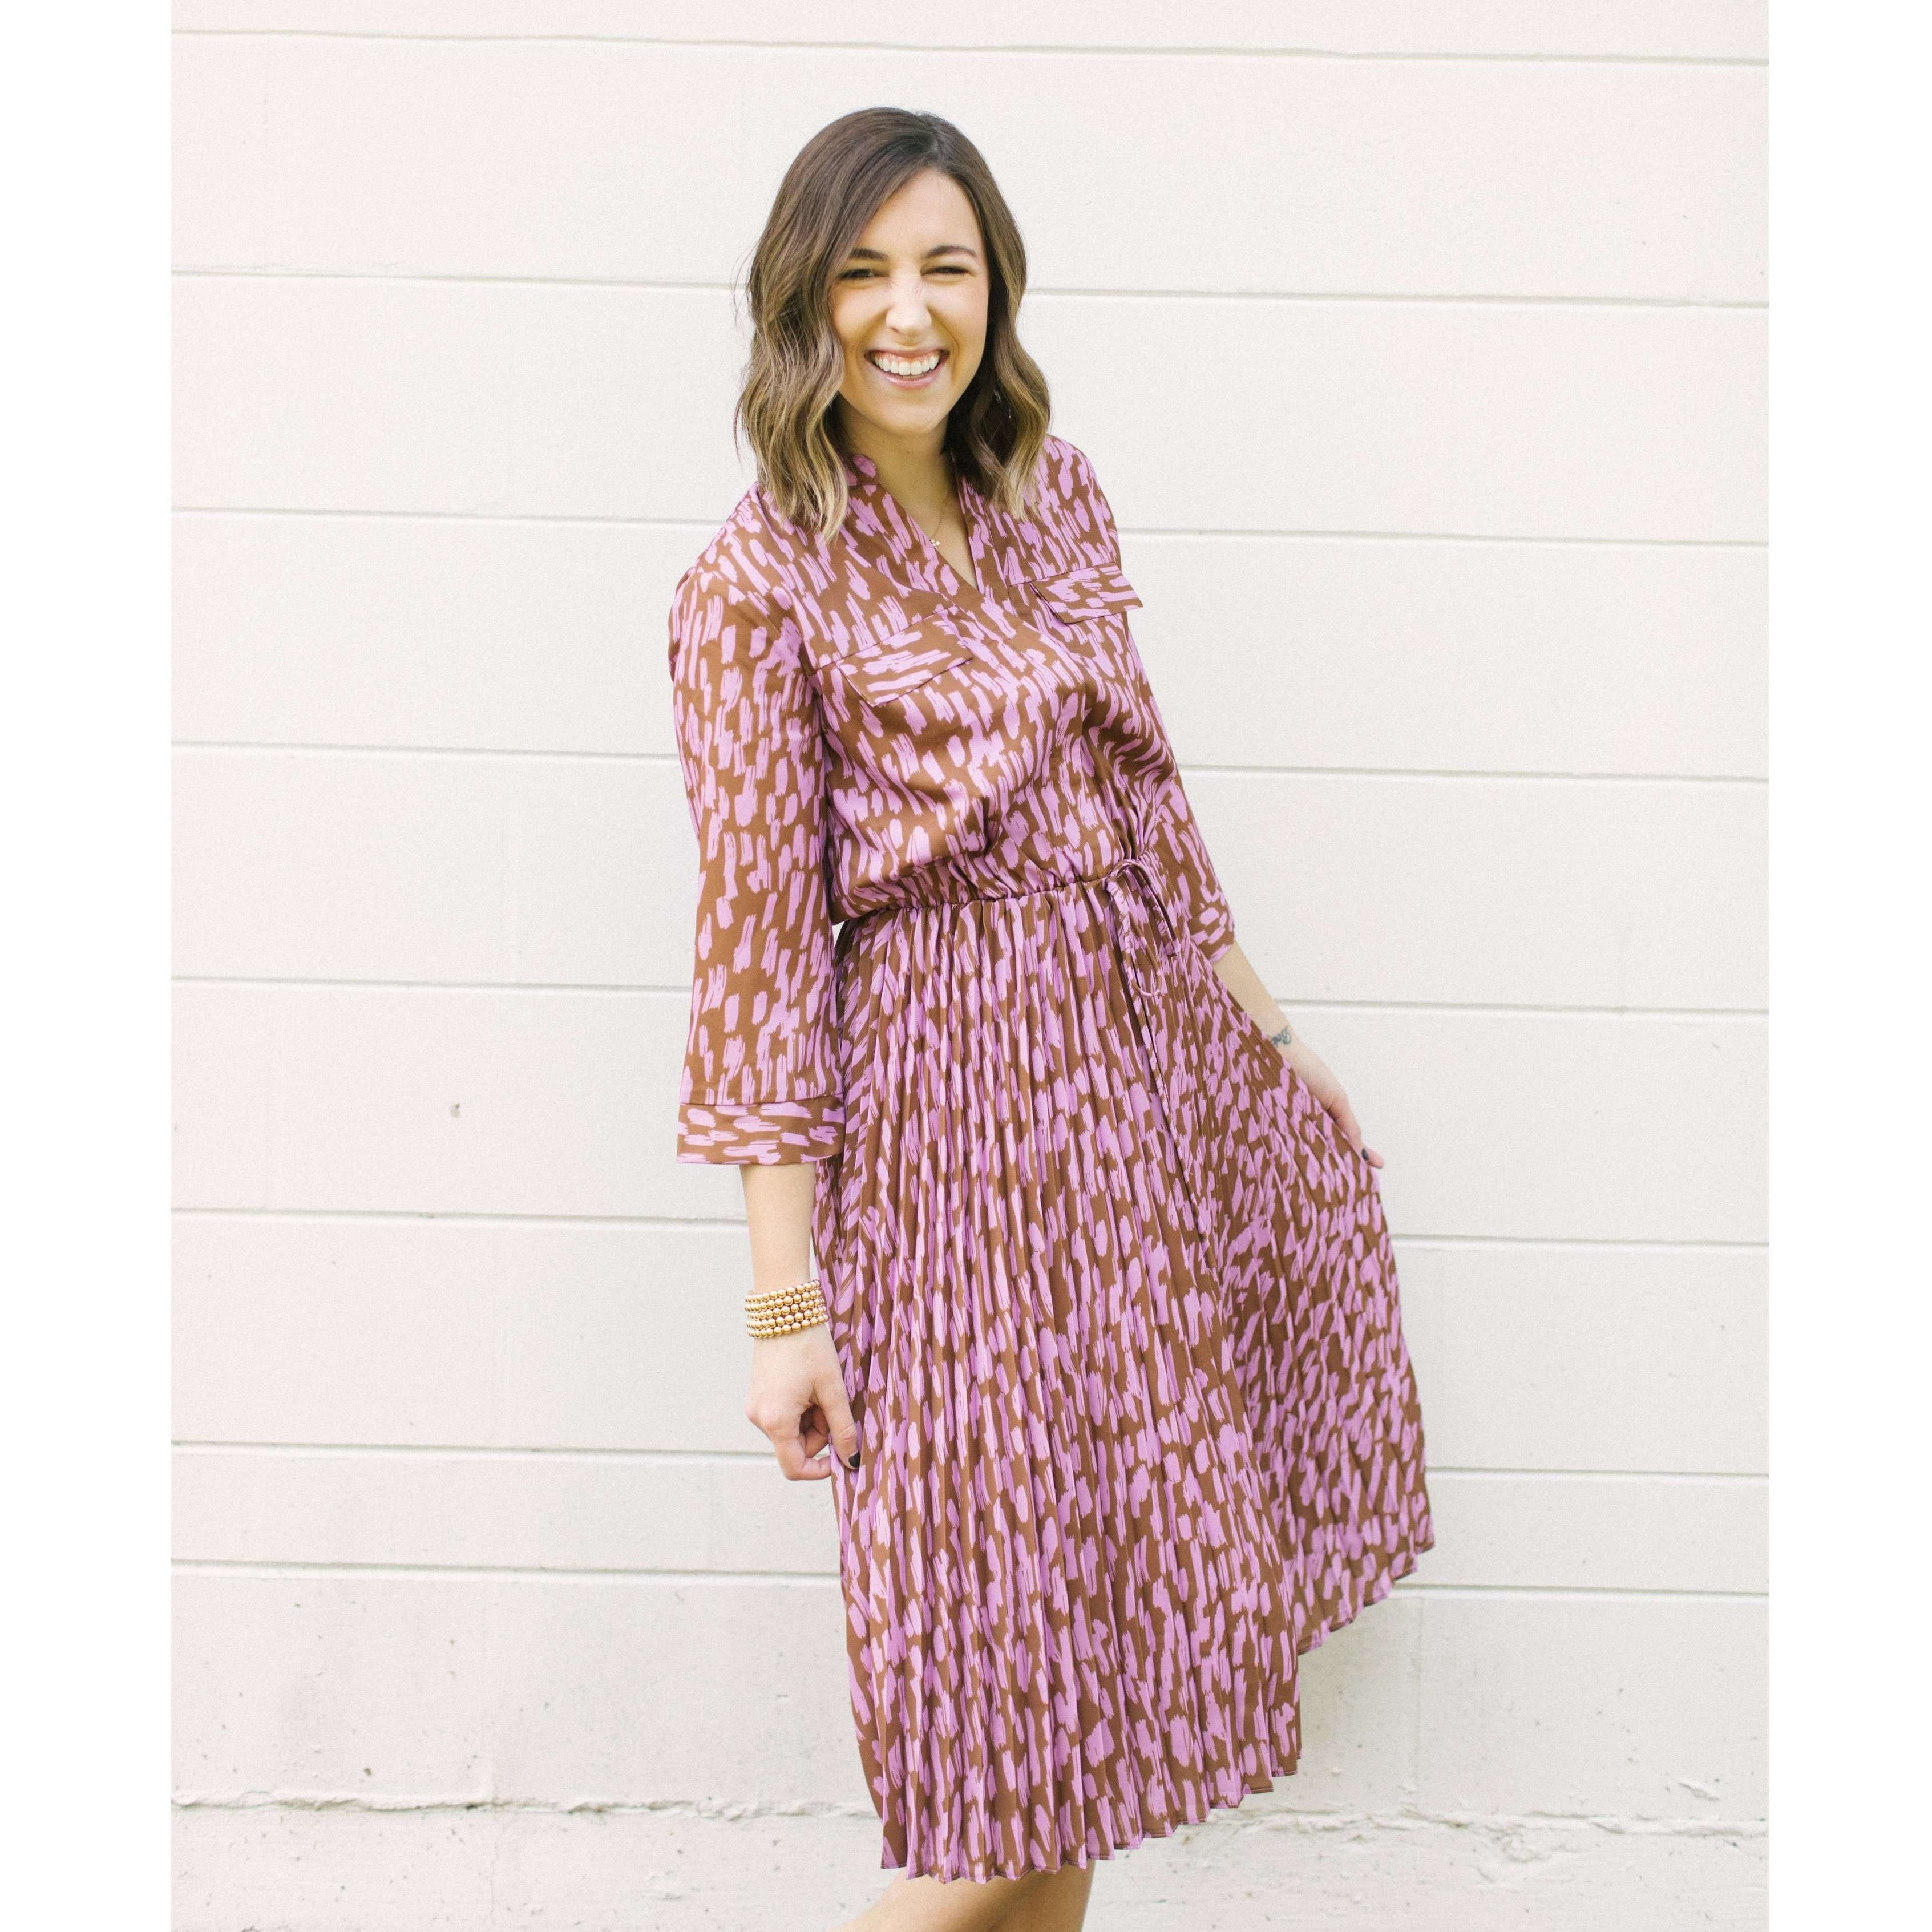 8.28 Boutique:Jade Melody Tam,Jade by Melody Tam Brown Brush Pleated Midi Dress,Dress